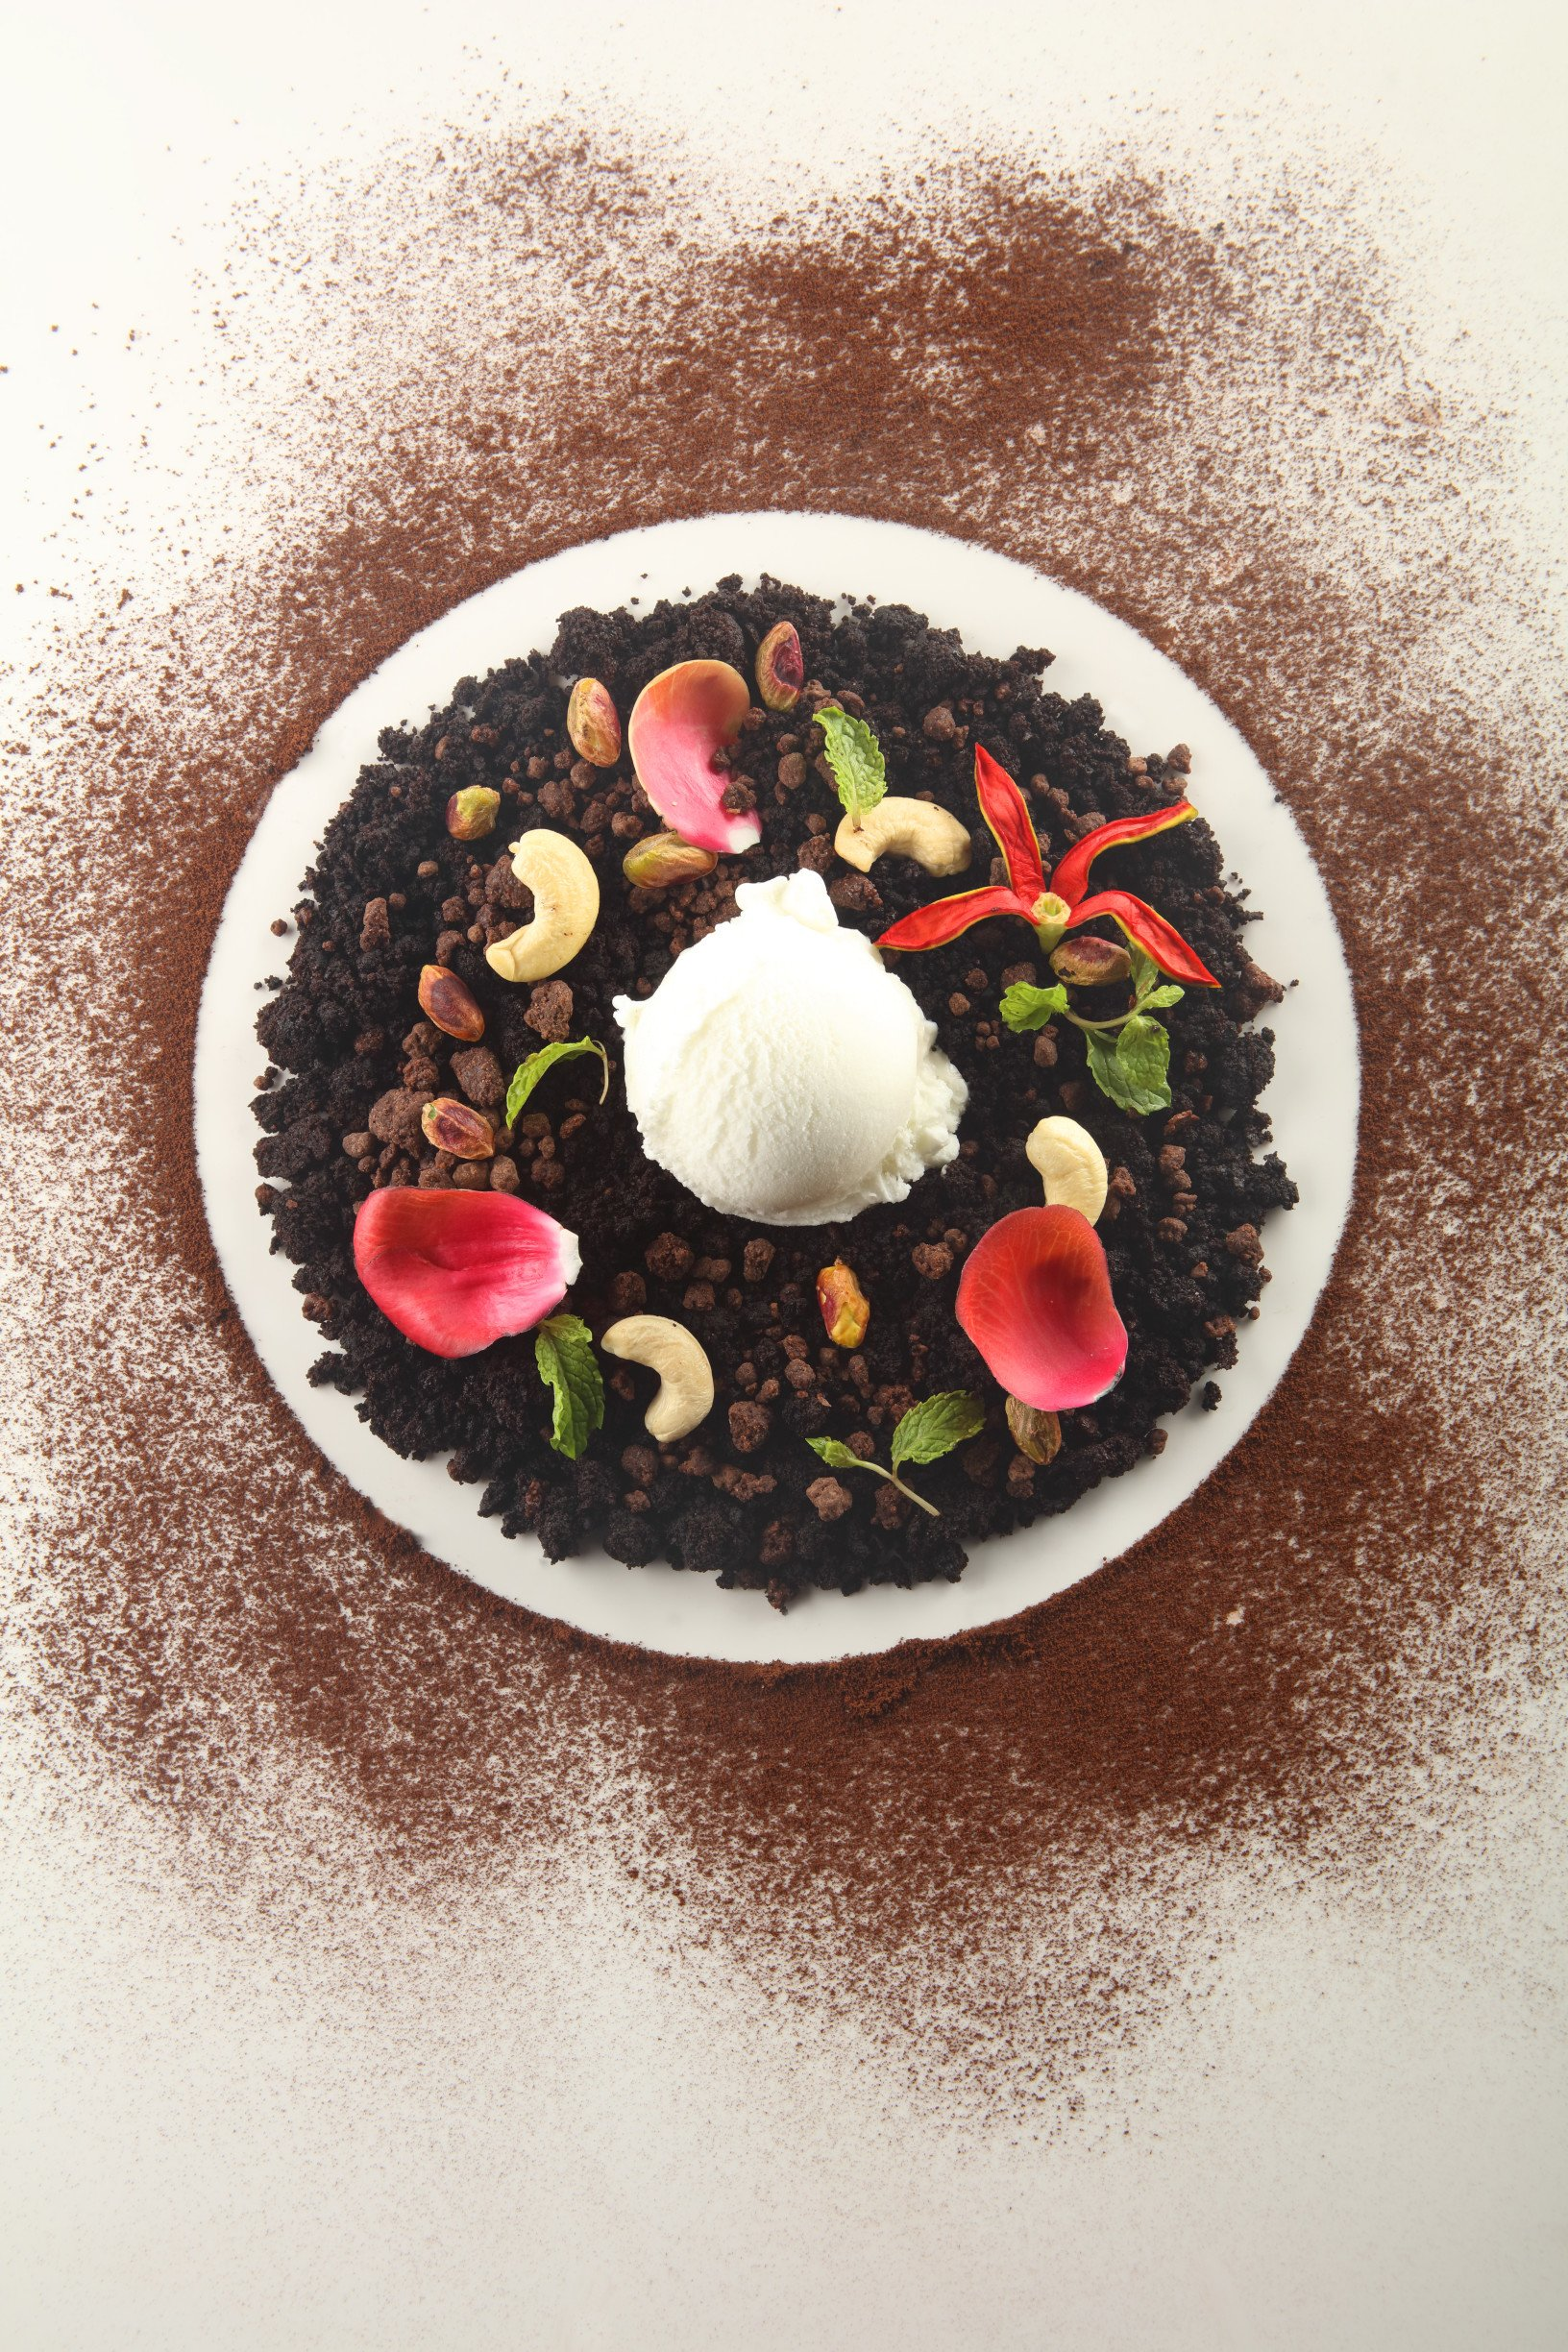 Warm Desserts To Indulge In Guilt-Free This Monsoon